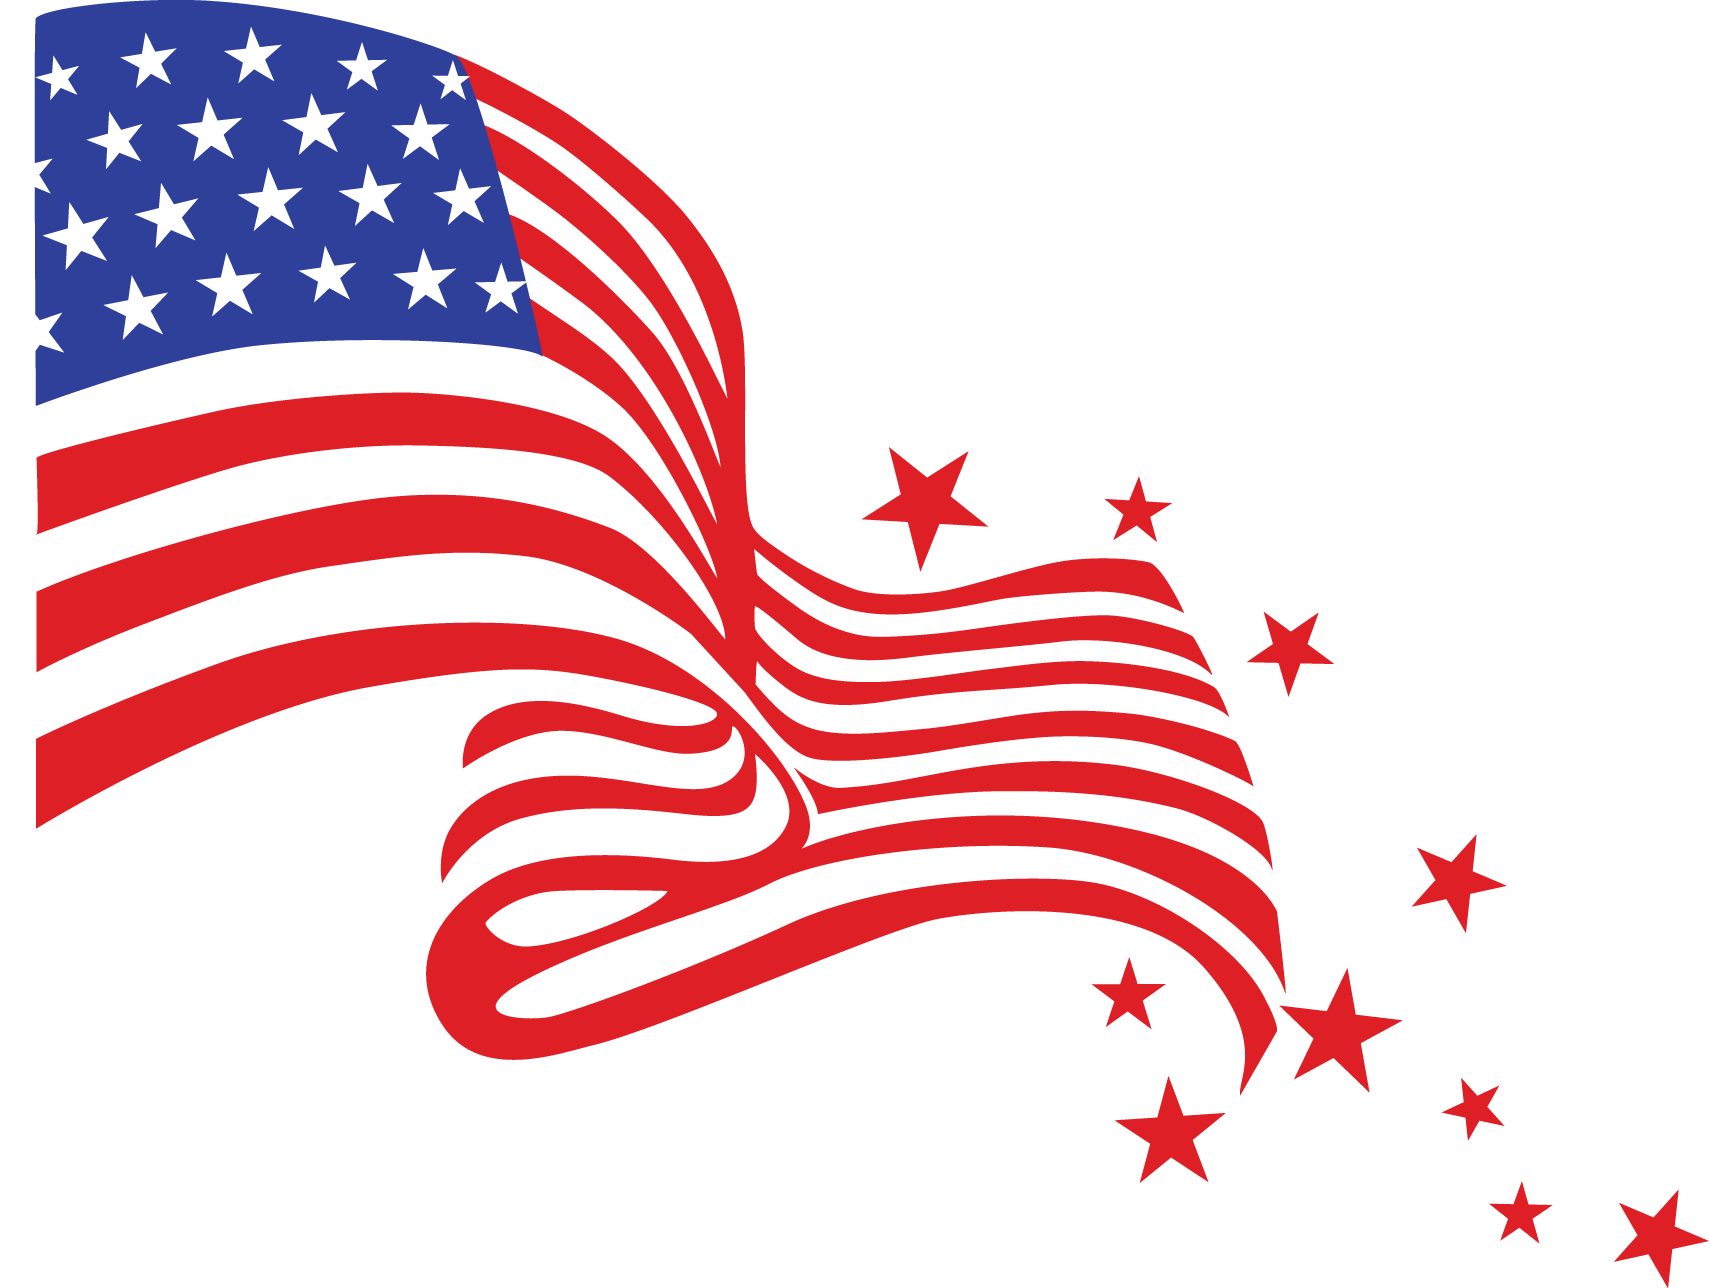 Alt american flag banner. Motivation clipart day